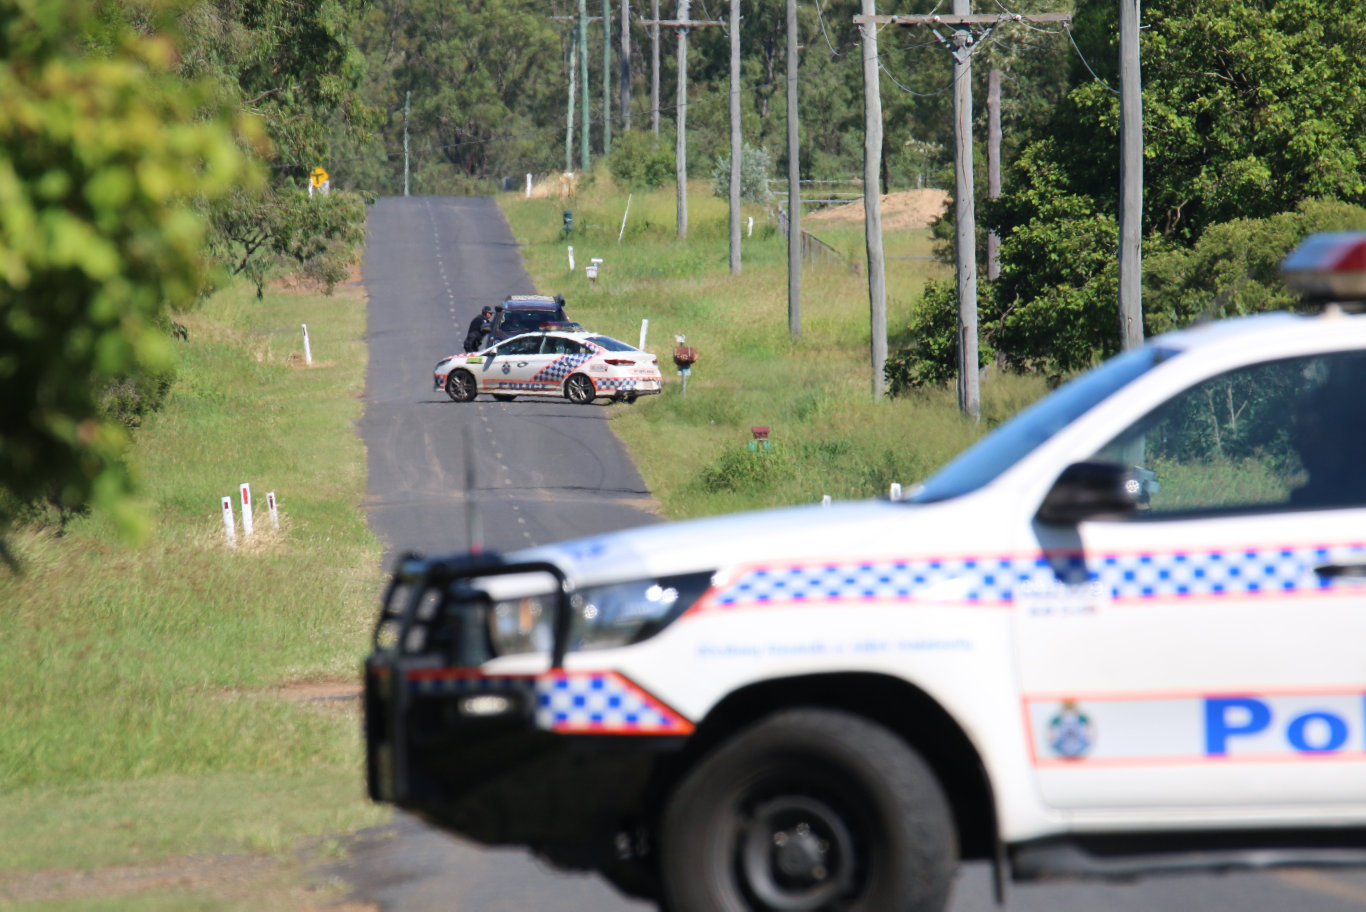 HOMICIDE: Police remain on scene and have blocked Markai Rd, following the discovery of a man's body. Picture: Dominic Elsome